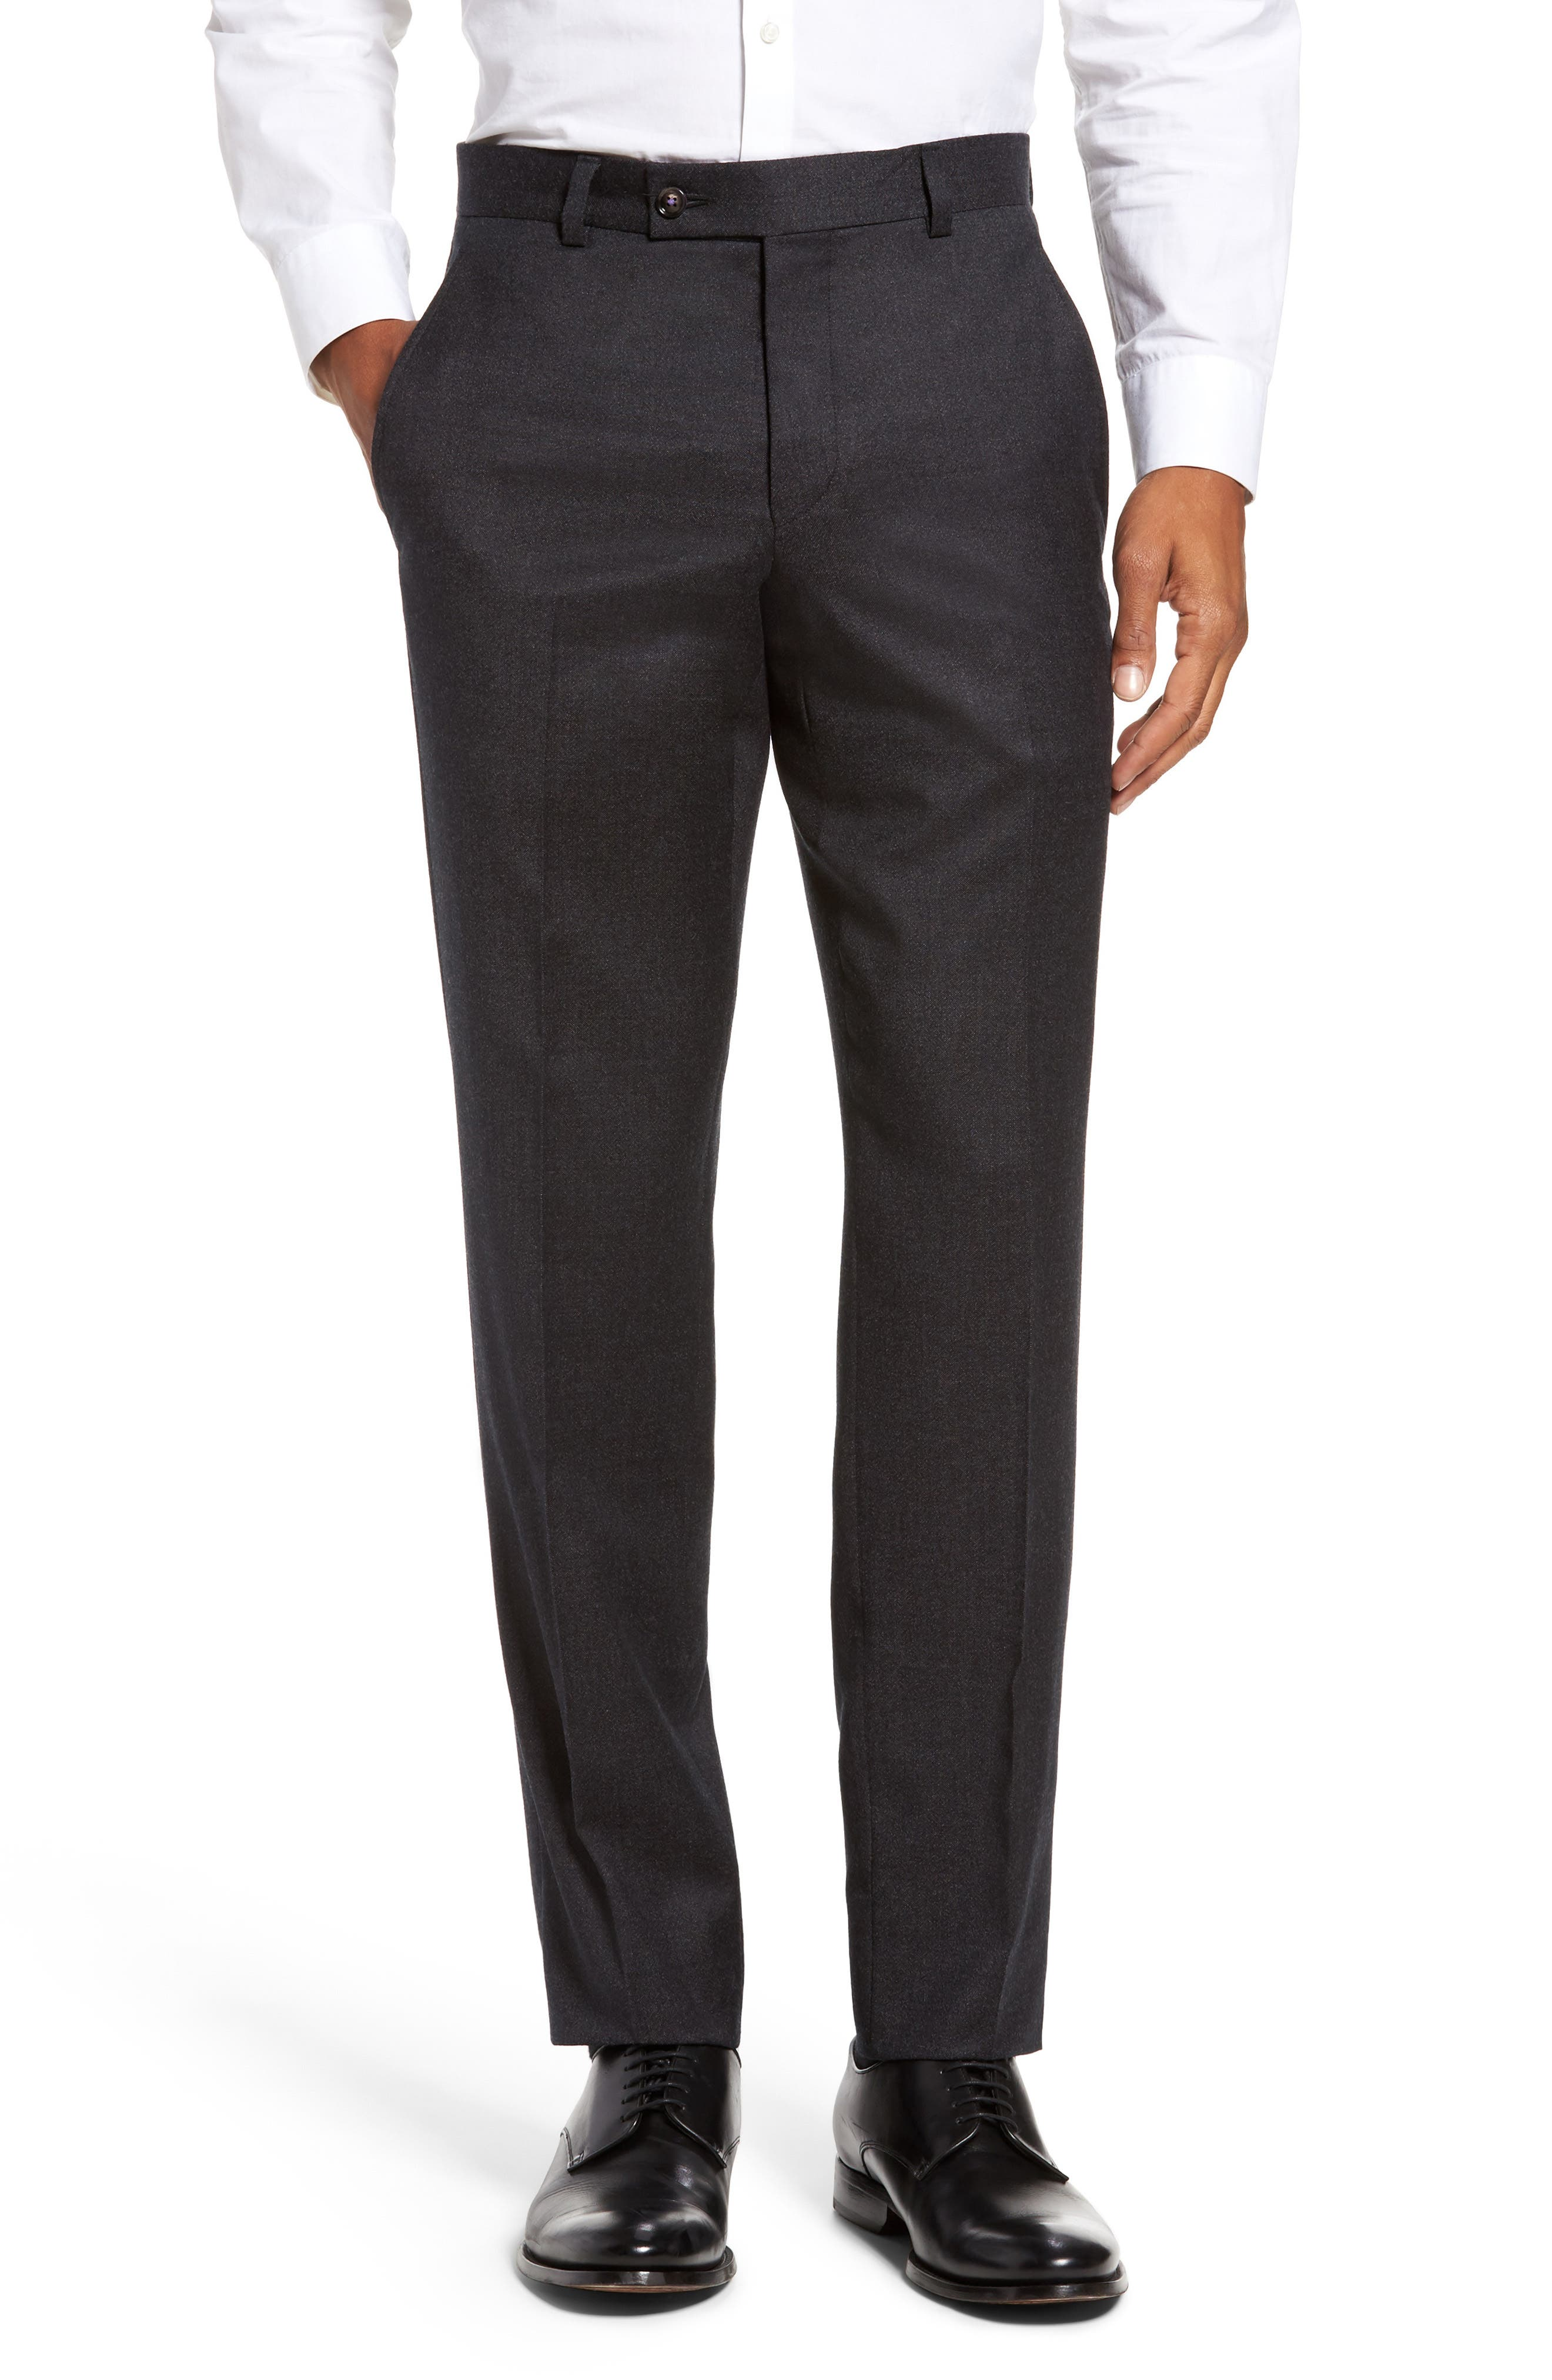 Jeremy Flat Front Solid Wool Trousers,                         Main,                         color, 050